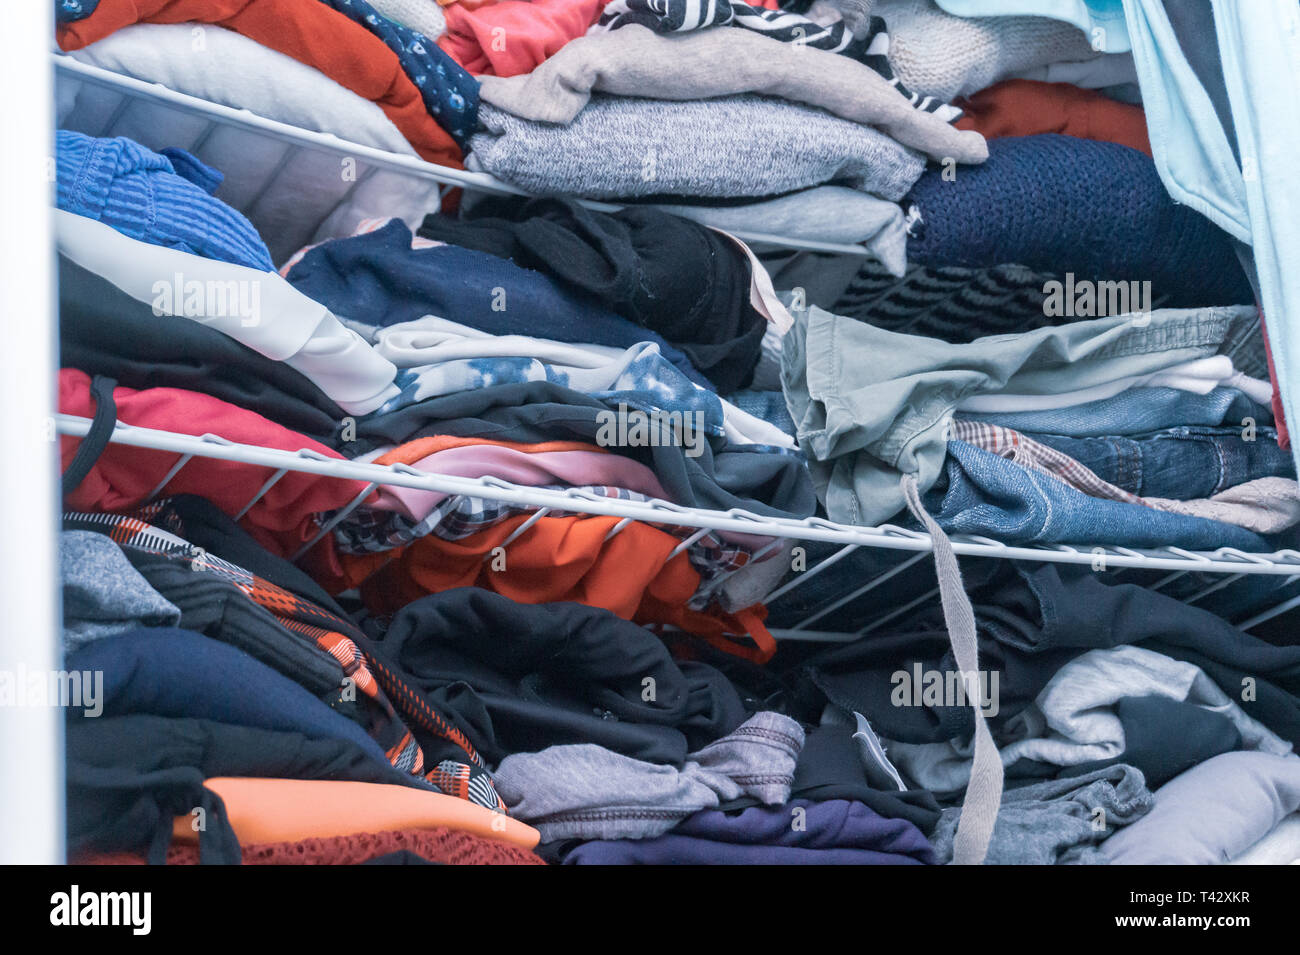 Blue and red hues of clothing in a woman's closet, folded but messy, in need of closet organization. Depicting donating clothes, tidying up. - Stock Image